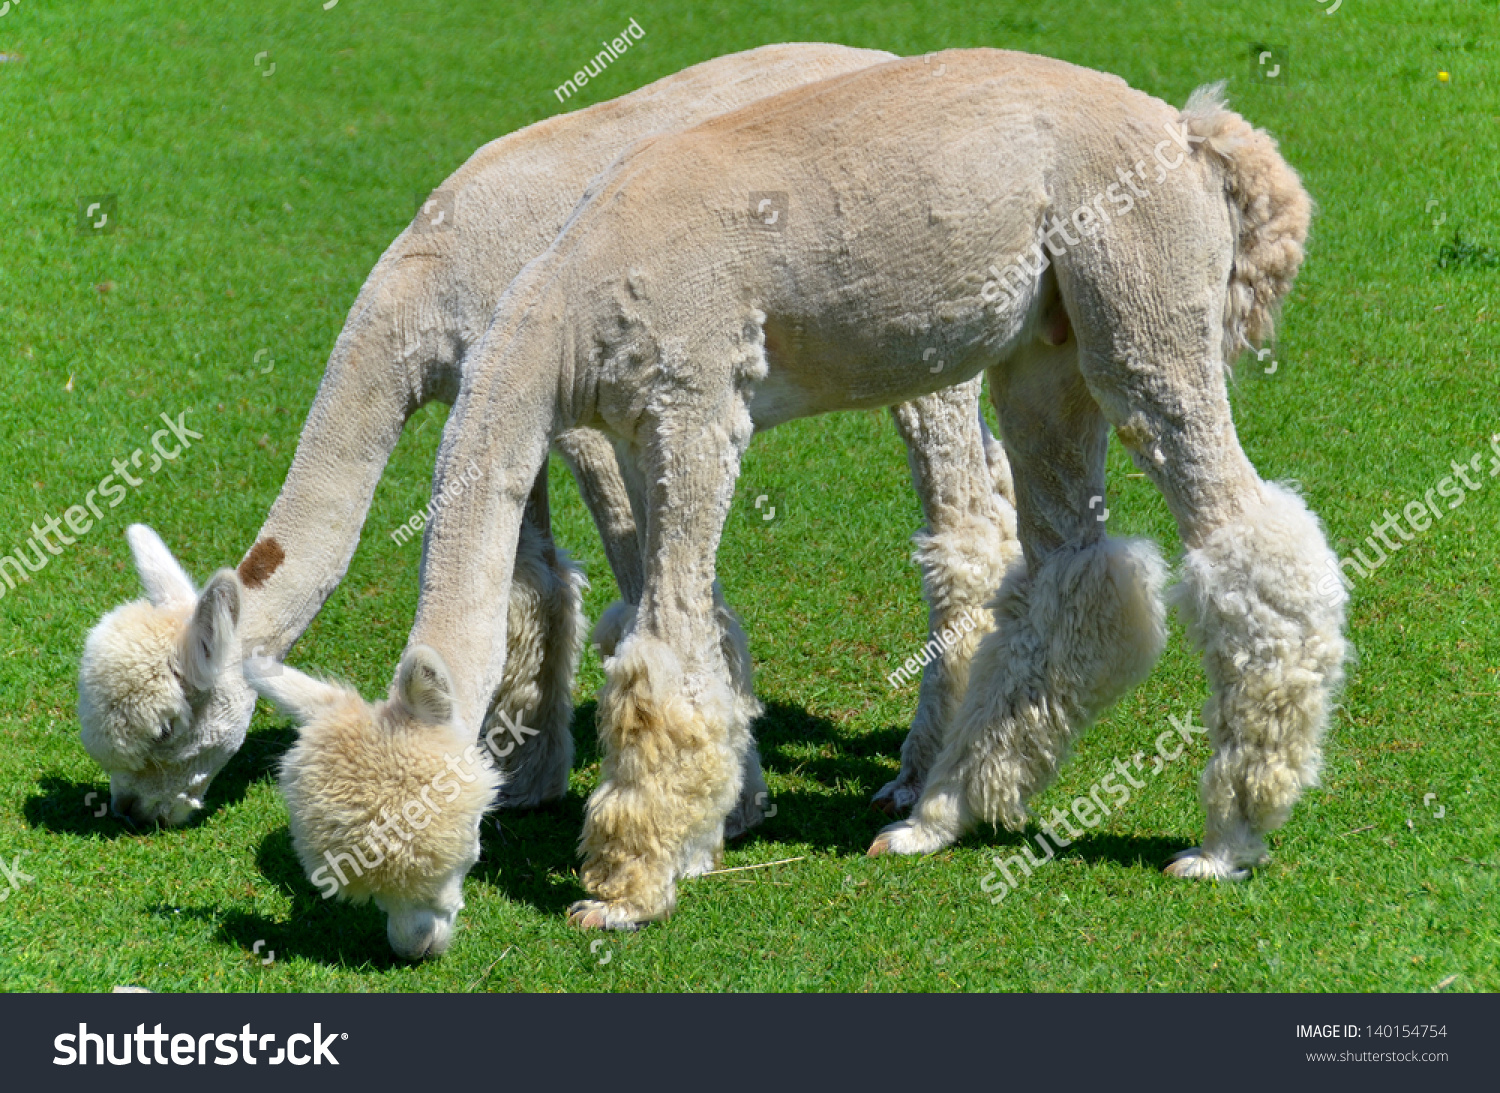 Alpaca Who Resemble A Small Llama In Appearance And Whose Wool ...